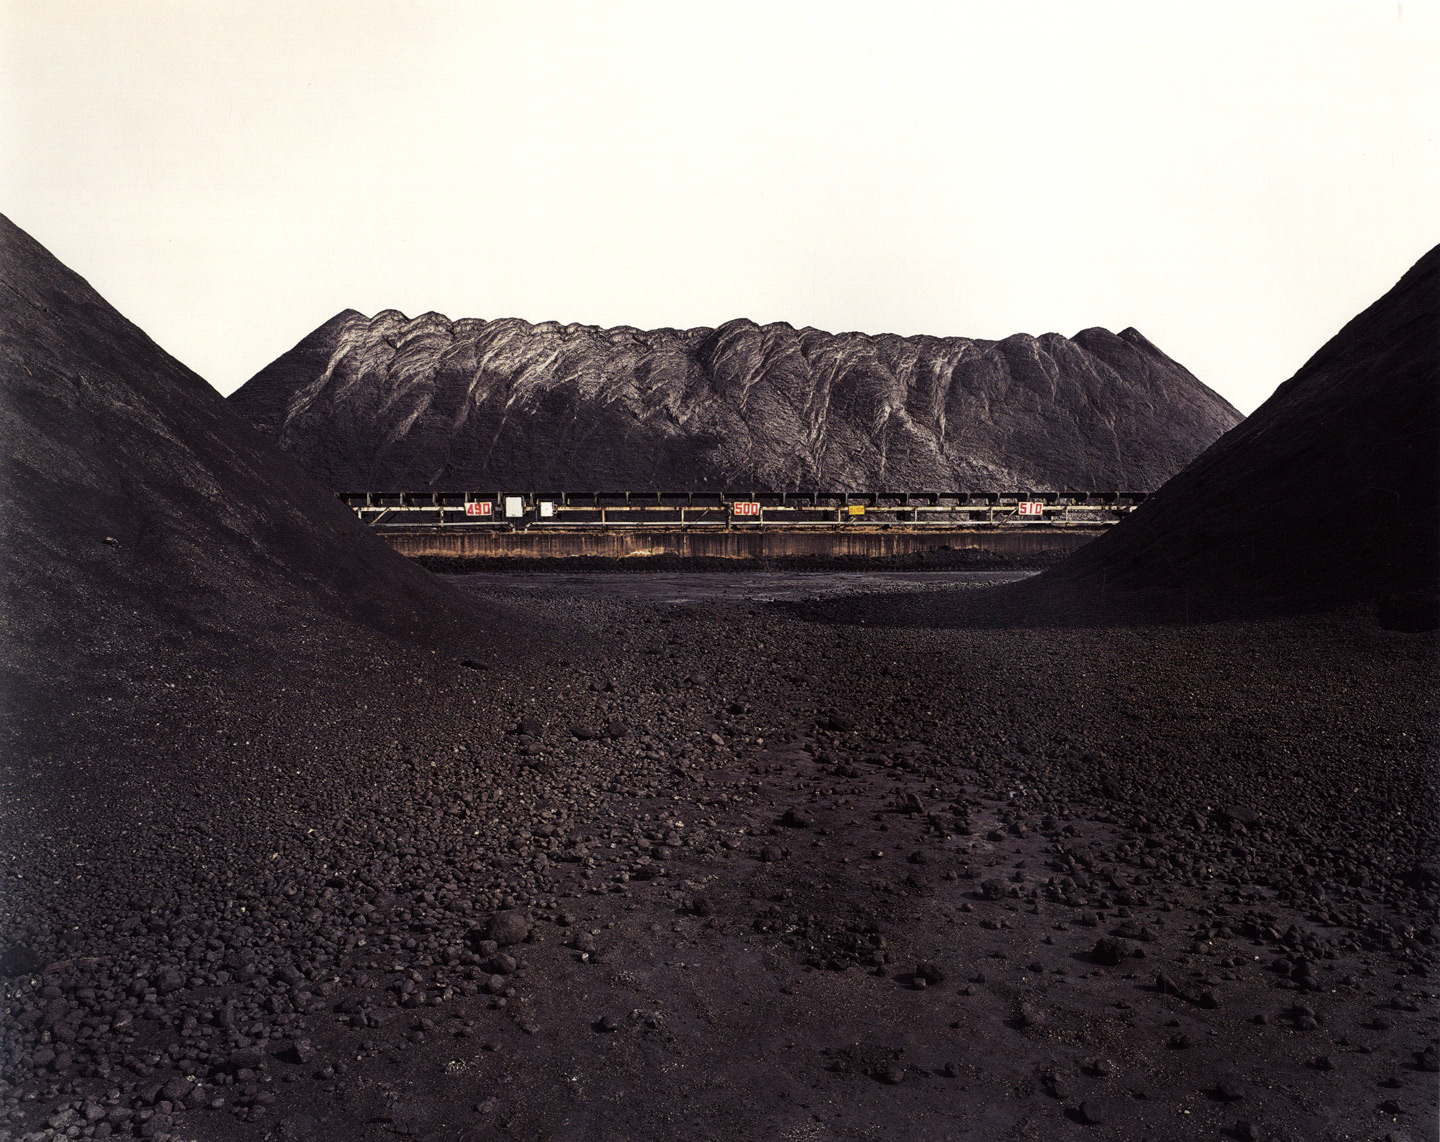 China: The Photographs of Edward Burtynsky (First Printing)